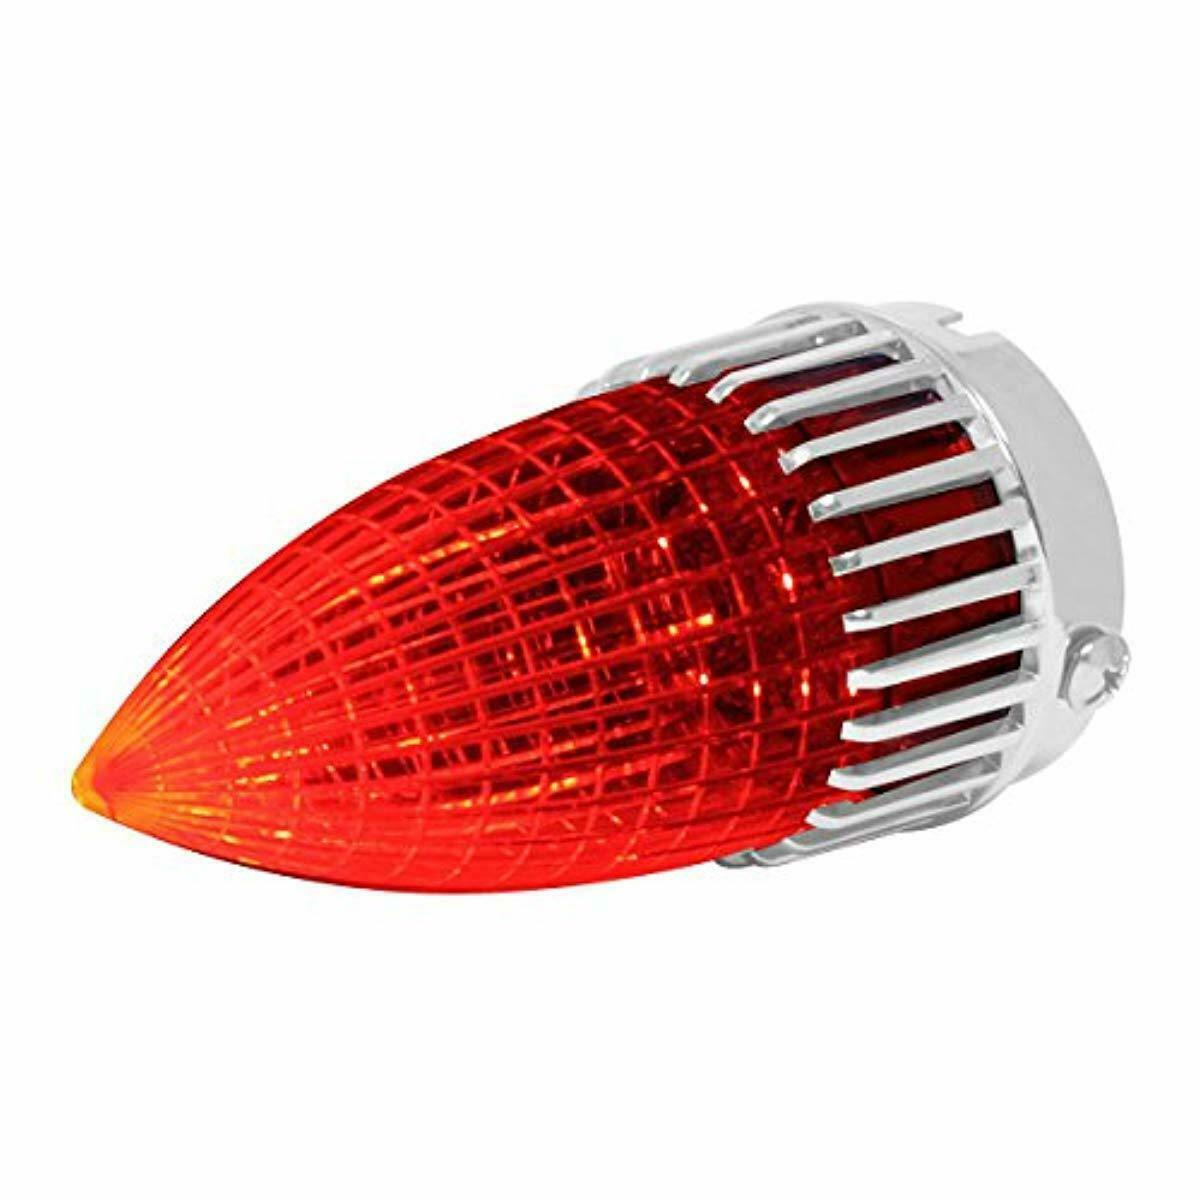 Caddy 1,Taillight Brake Stop Lamp Red Bulbs Assembly 59 1959 Cadillac 59 Cad